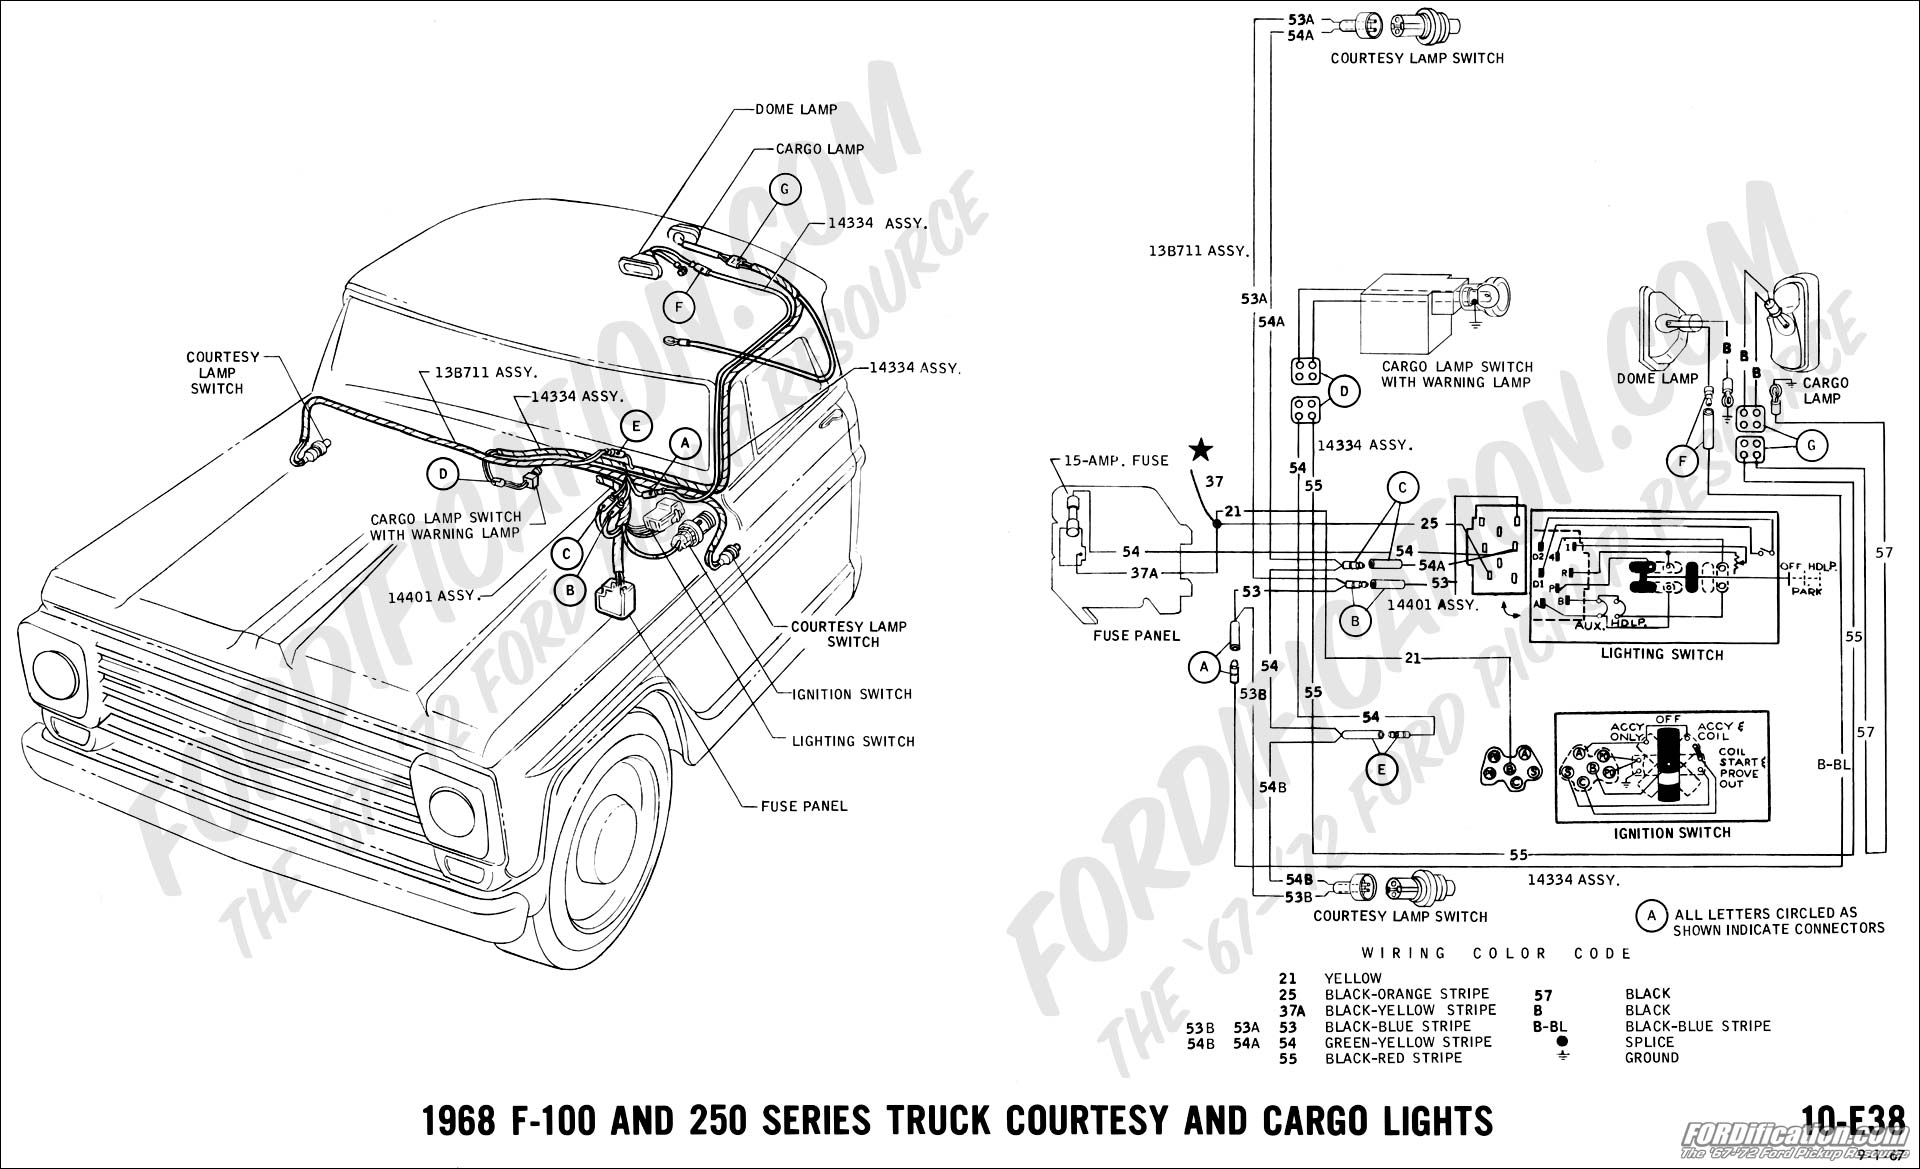 ford truck technical drawings and schematics - section h ... 68 ford wiring color of wires